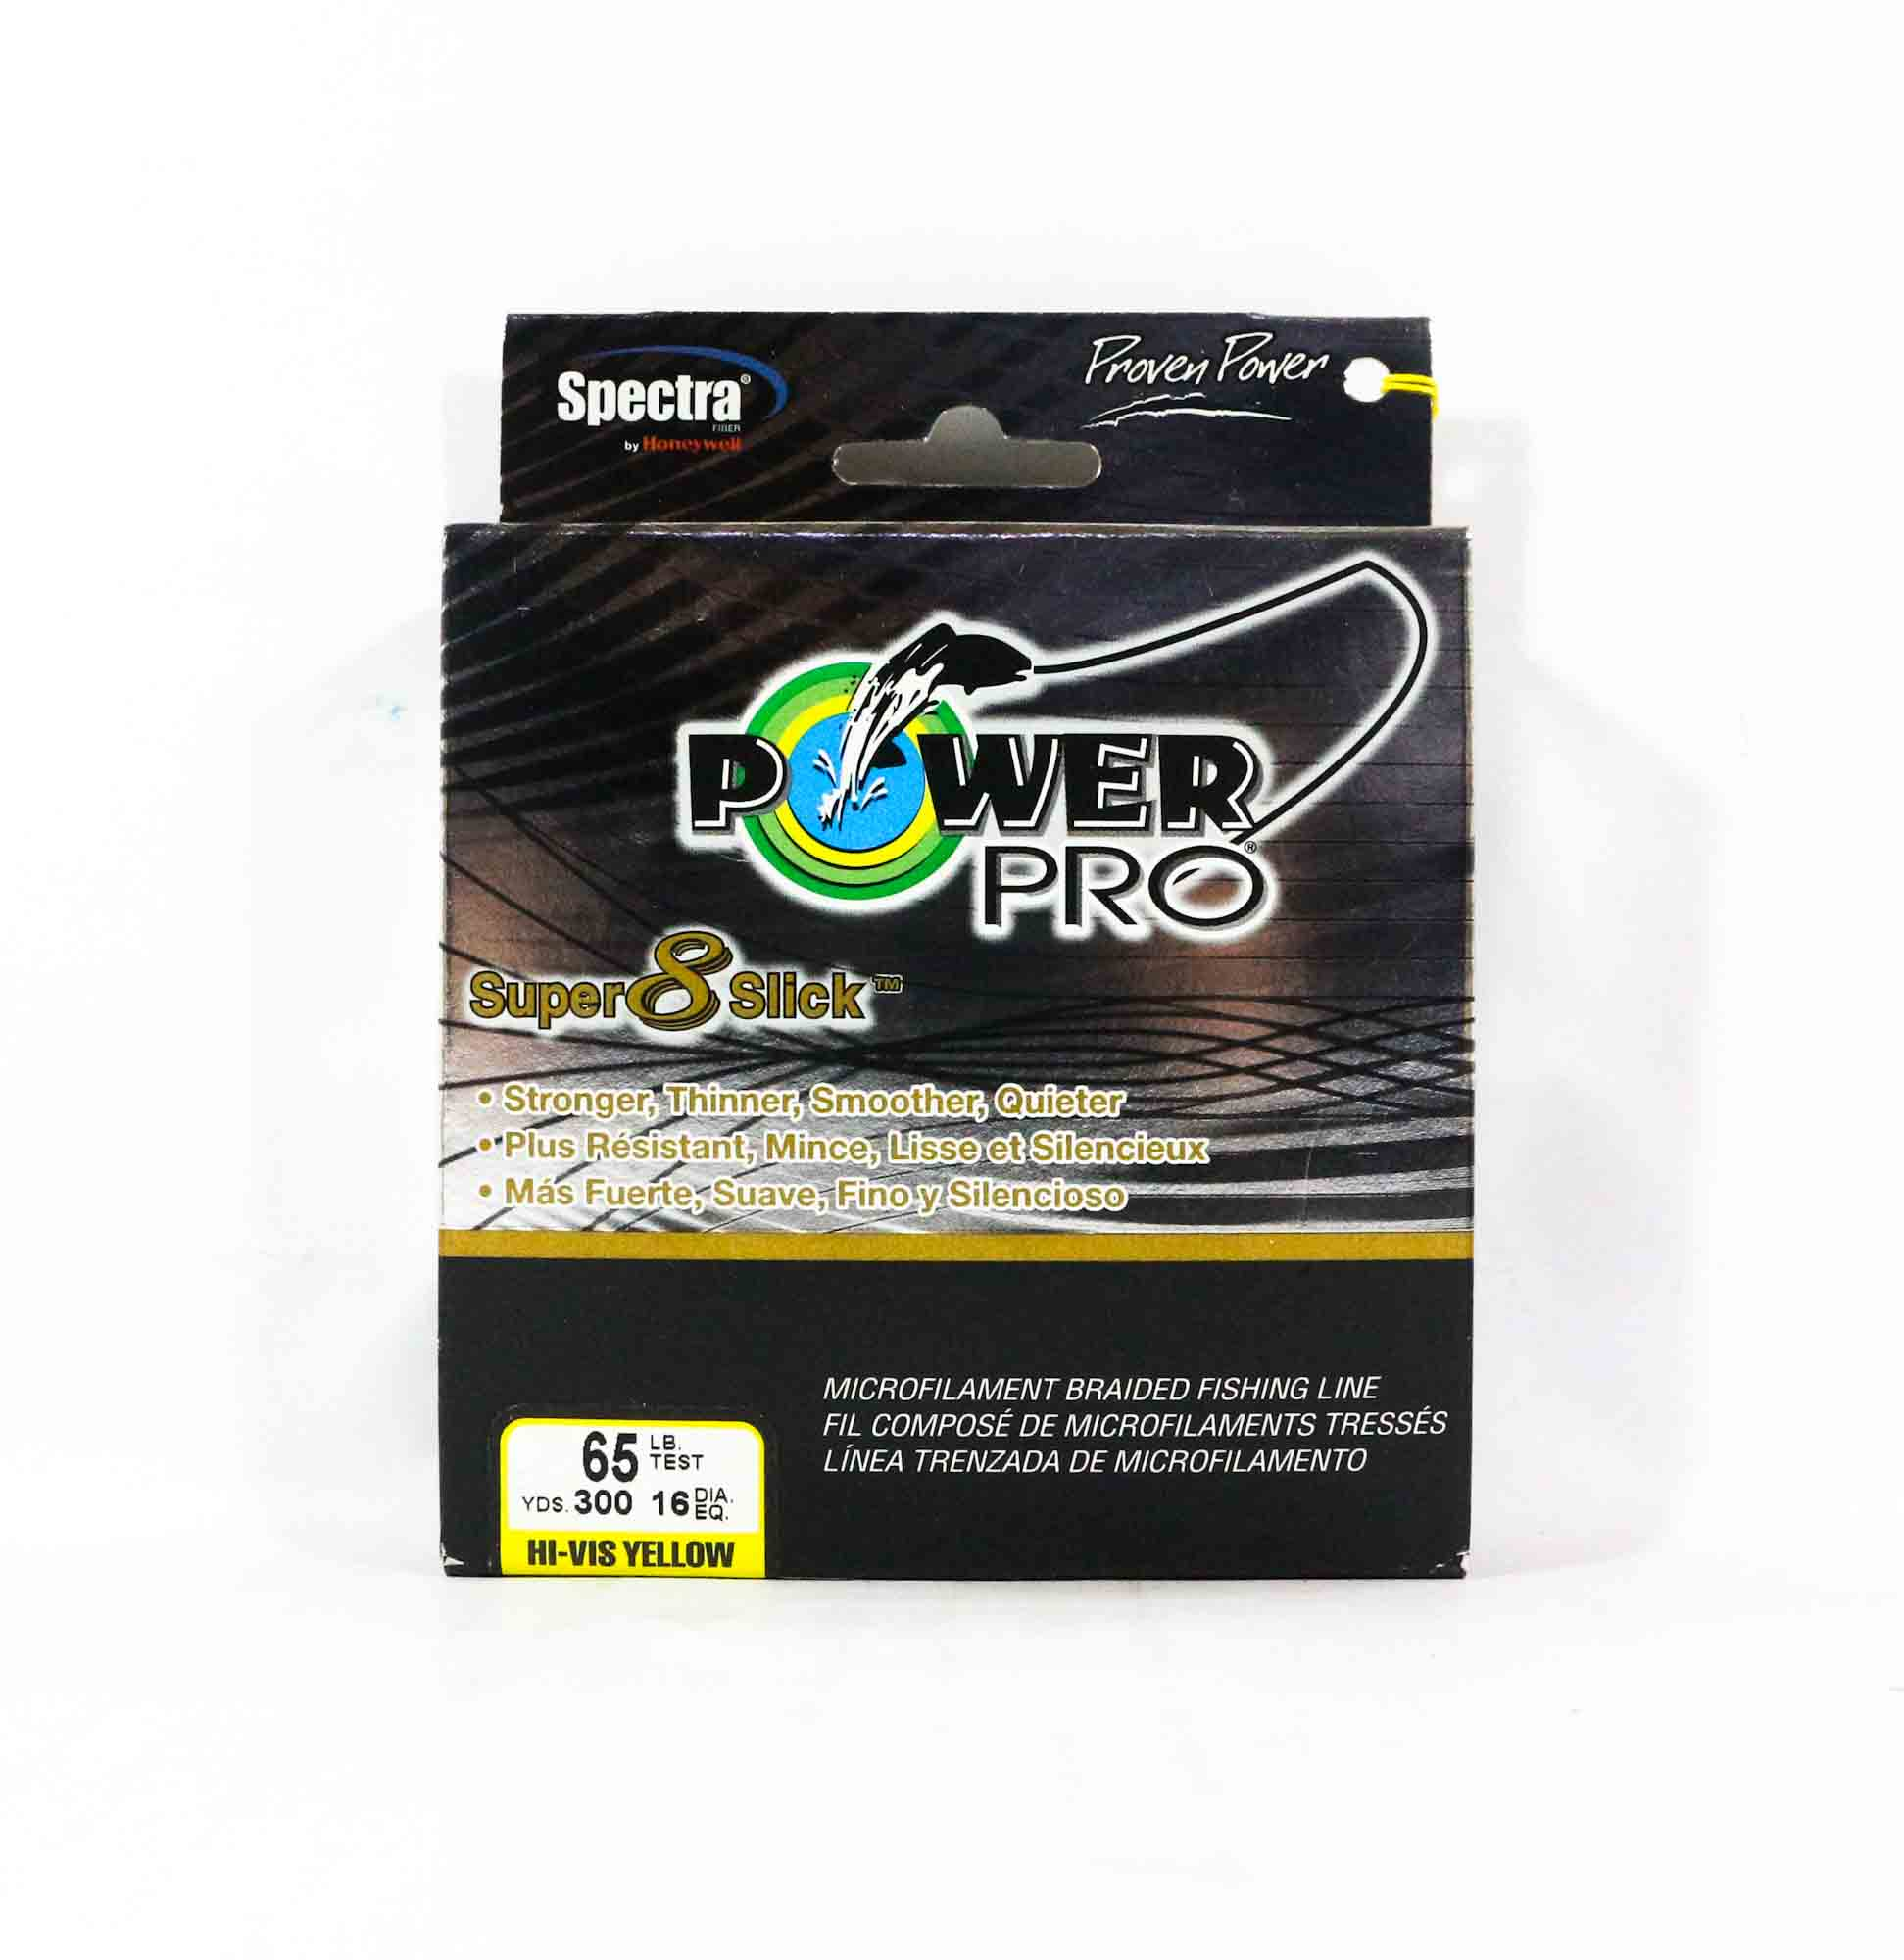 Power Pro Super 8 Slick Spectra Line 65lb by 300yds Yellow (0039)